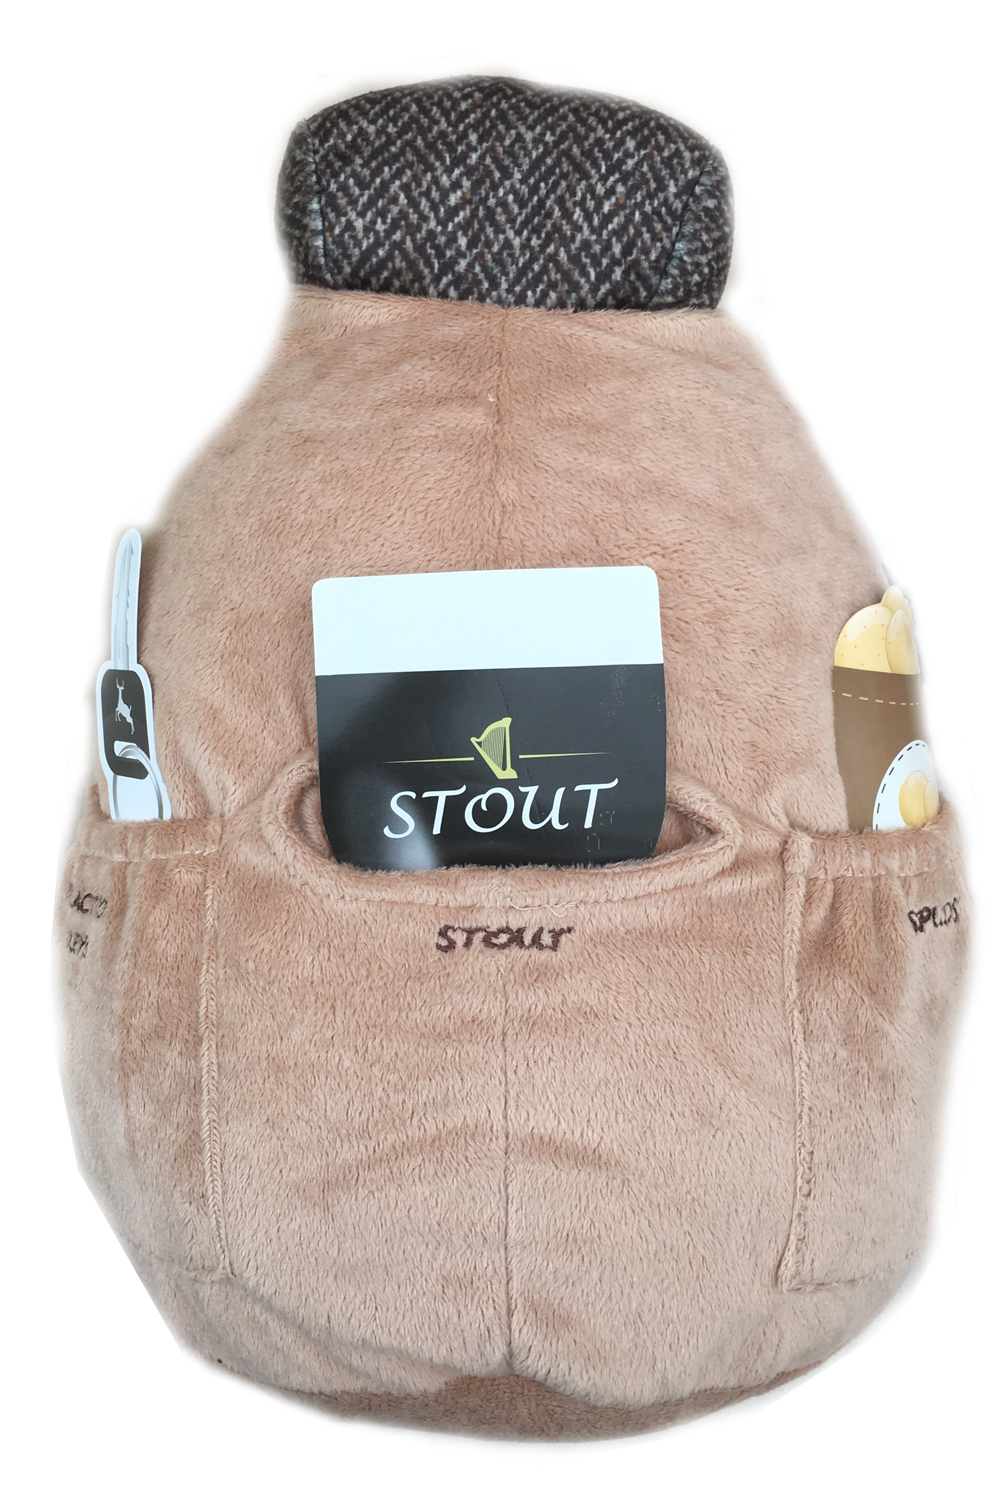 Work-Spuddy-Couch-Potato-Career-Keyworkers-Cushion-Remote-Holder-Novelty-Pillow thumbnail 23